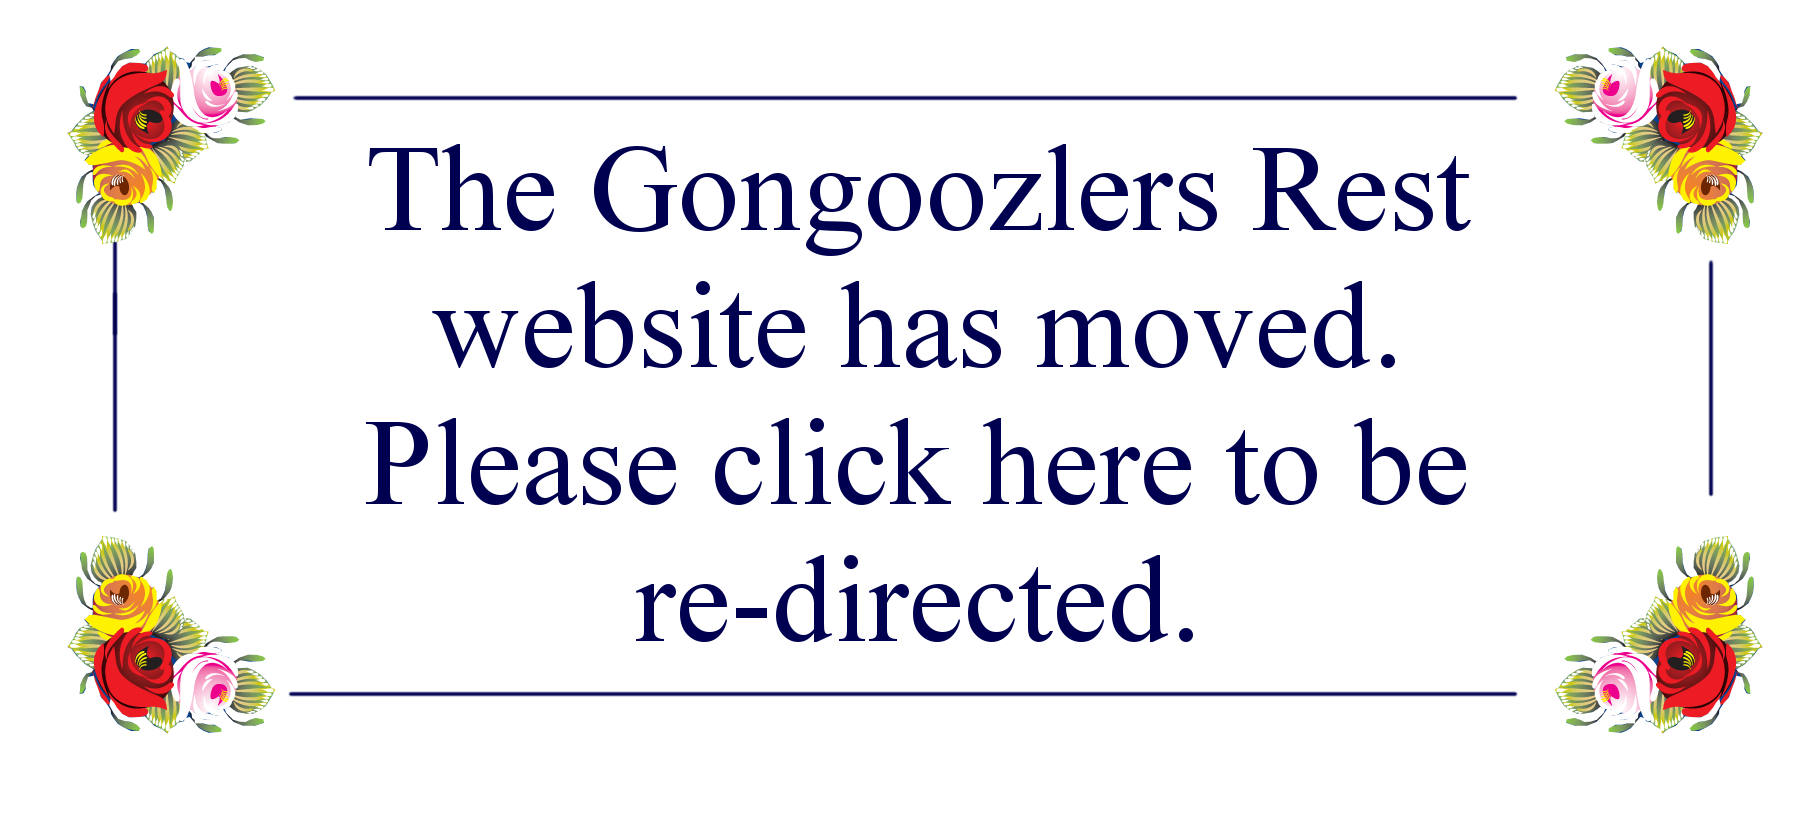 The Gongoozlers Rest website has moved. Please click here to be re-directed